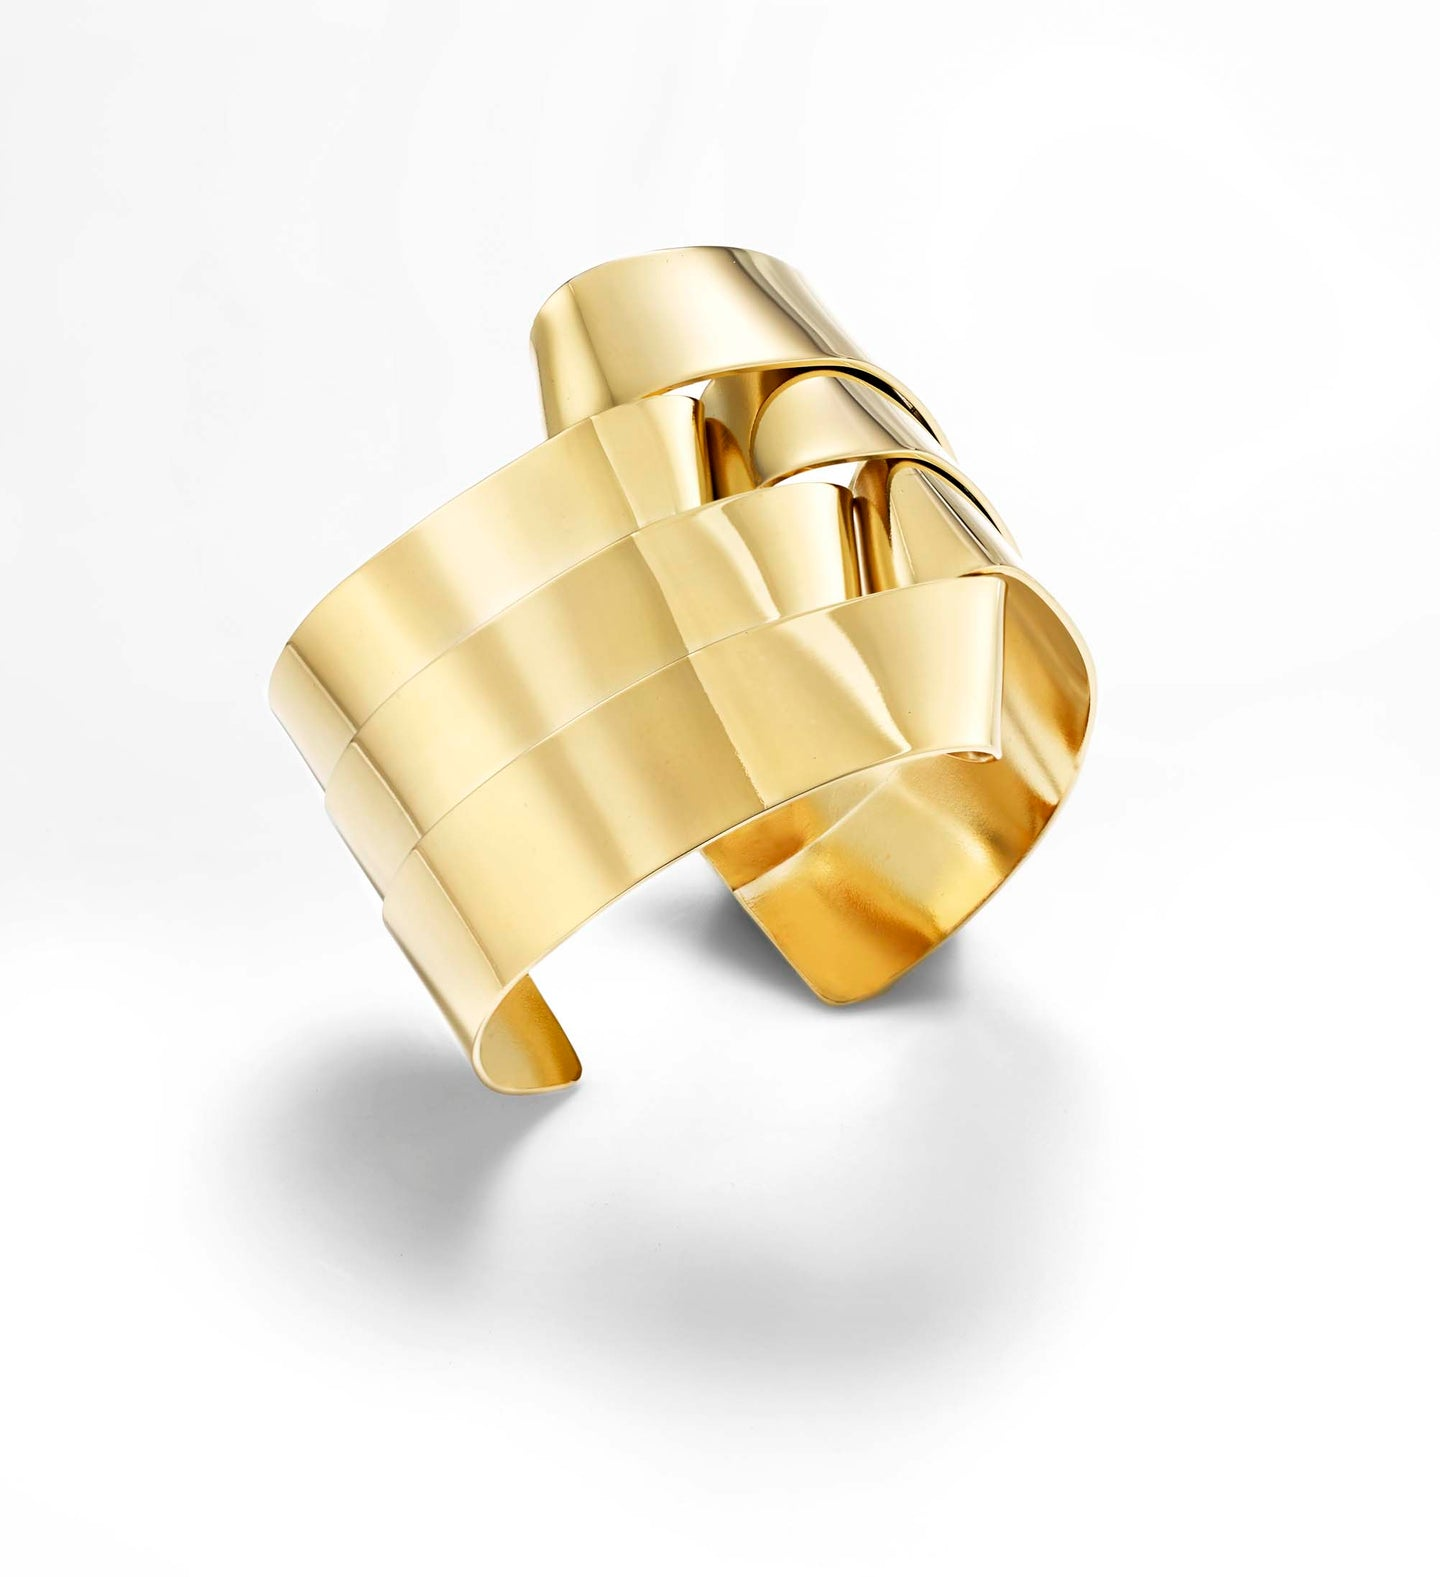 Braid cuff bracelet is hand fabricated in brass and finished with 14k gold plating. It is approximately 1.5